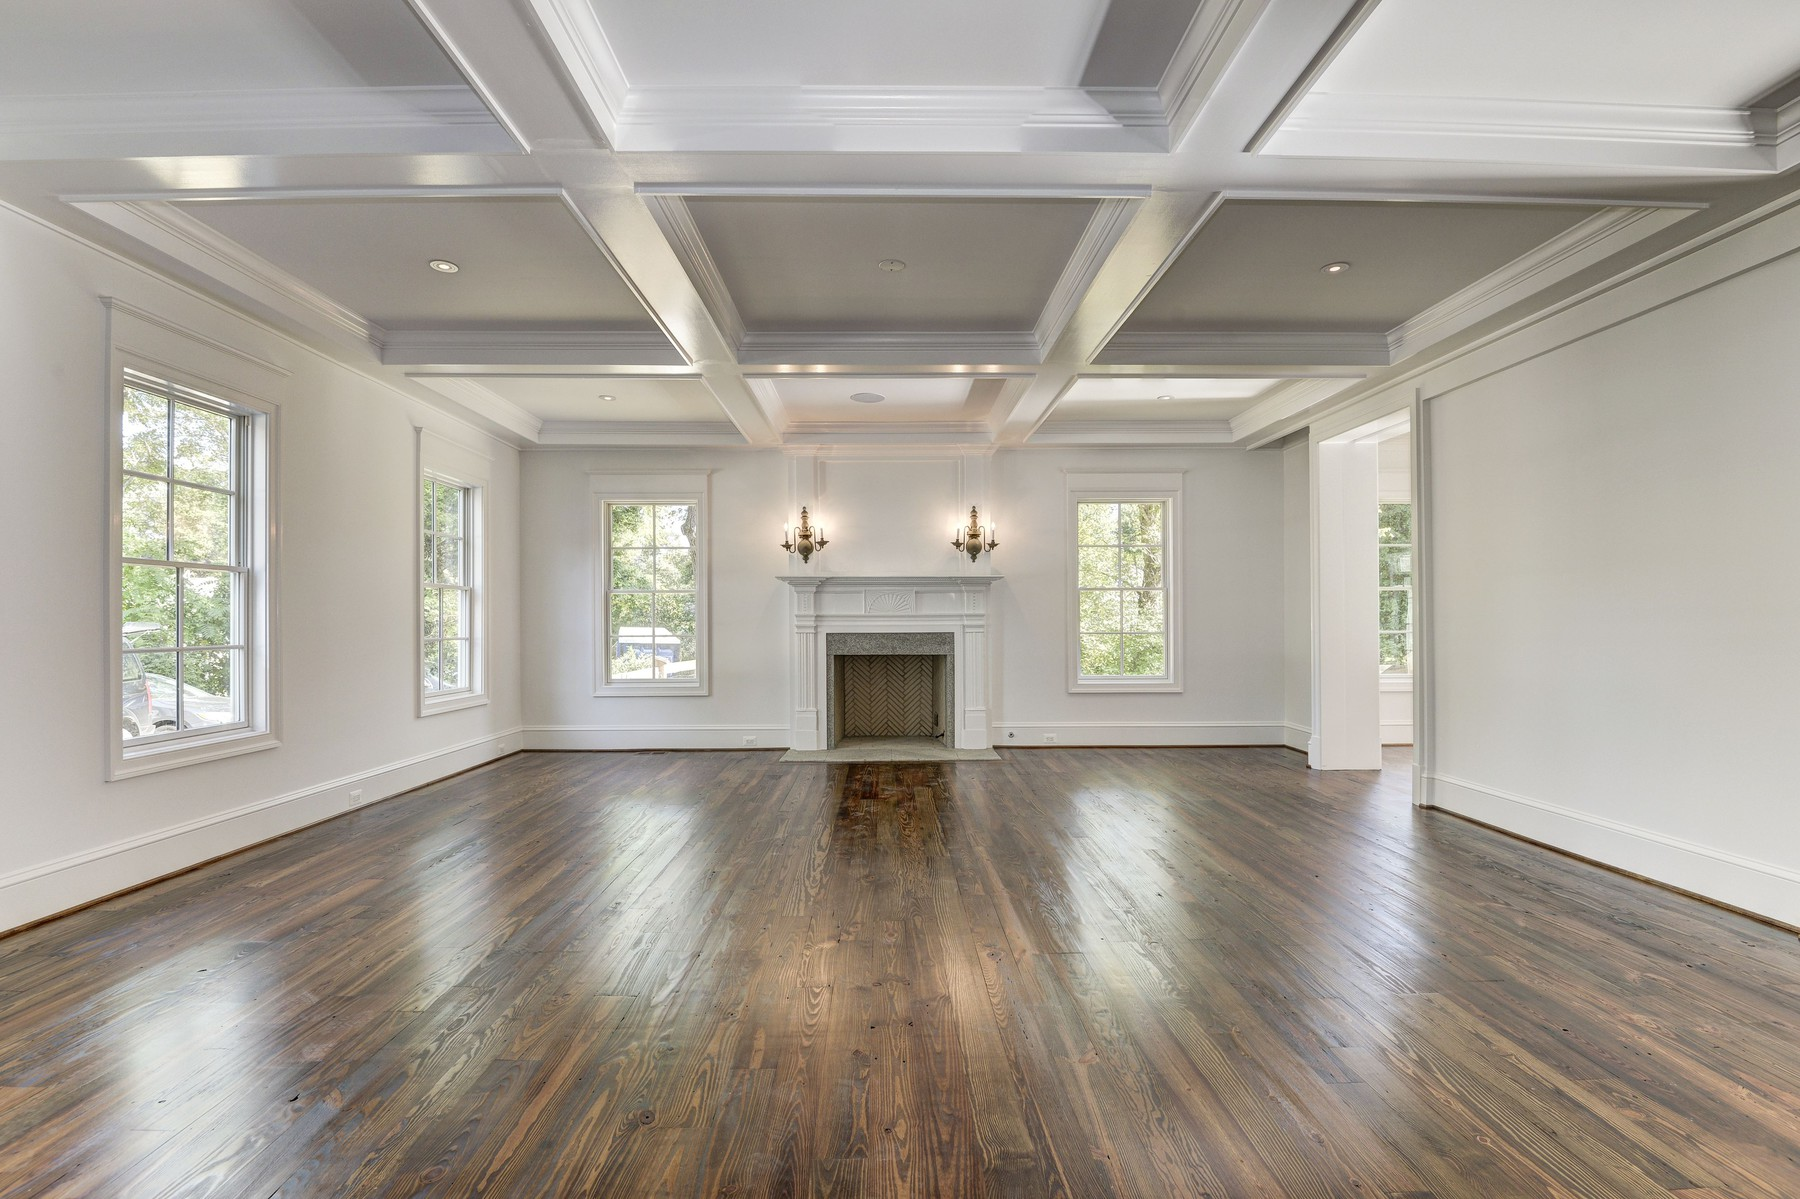 Additional photo for property listing at 6349 Georgetown Pike, Mclean  McLean, Virginia 22101 United States